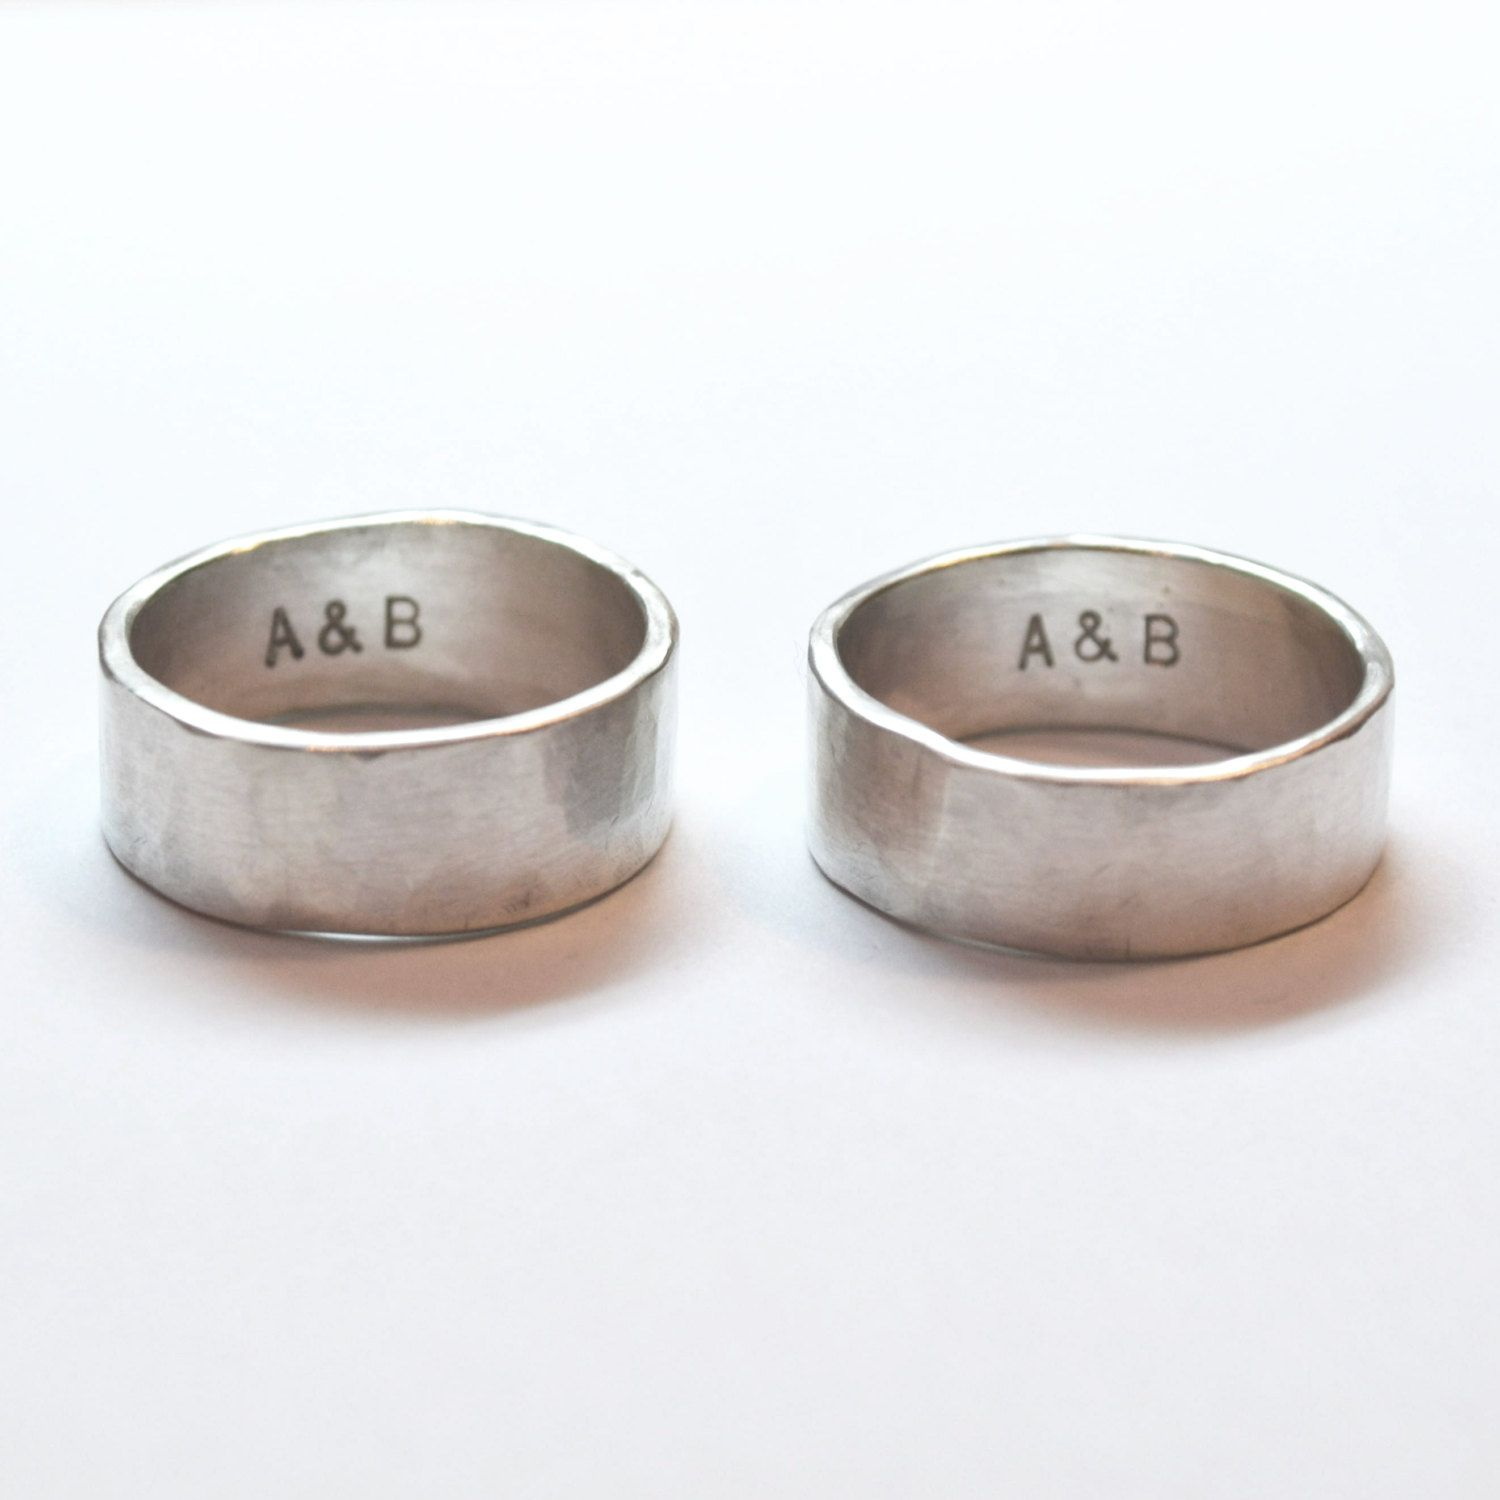 gay wedding bands Silver Hammered Men s Ring Wedding Bands With short Inscription Handmade Silver Men s Ring Gay